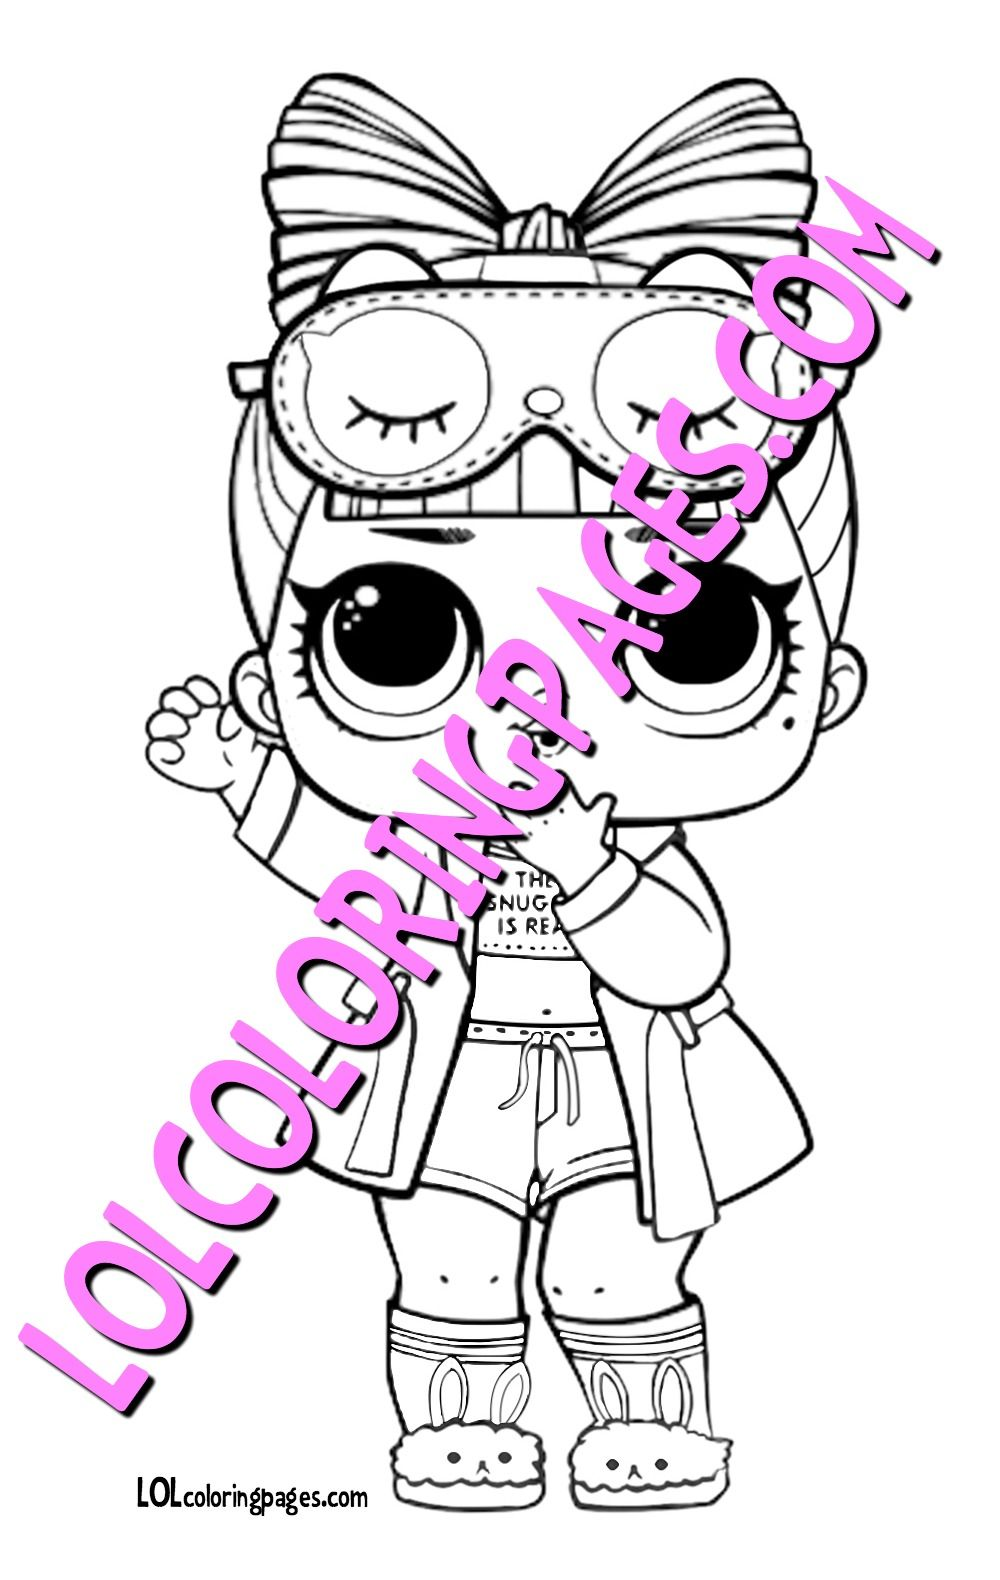 Snuggle Babe Lol Surprise Doll Free Coloring Page To Print Come To